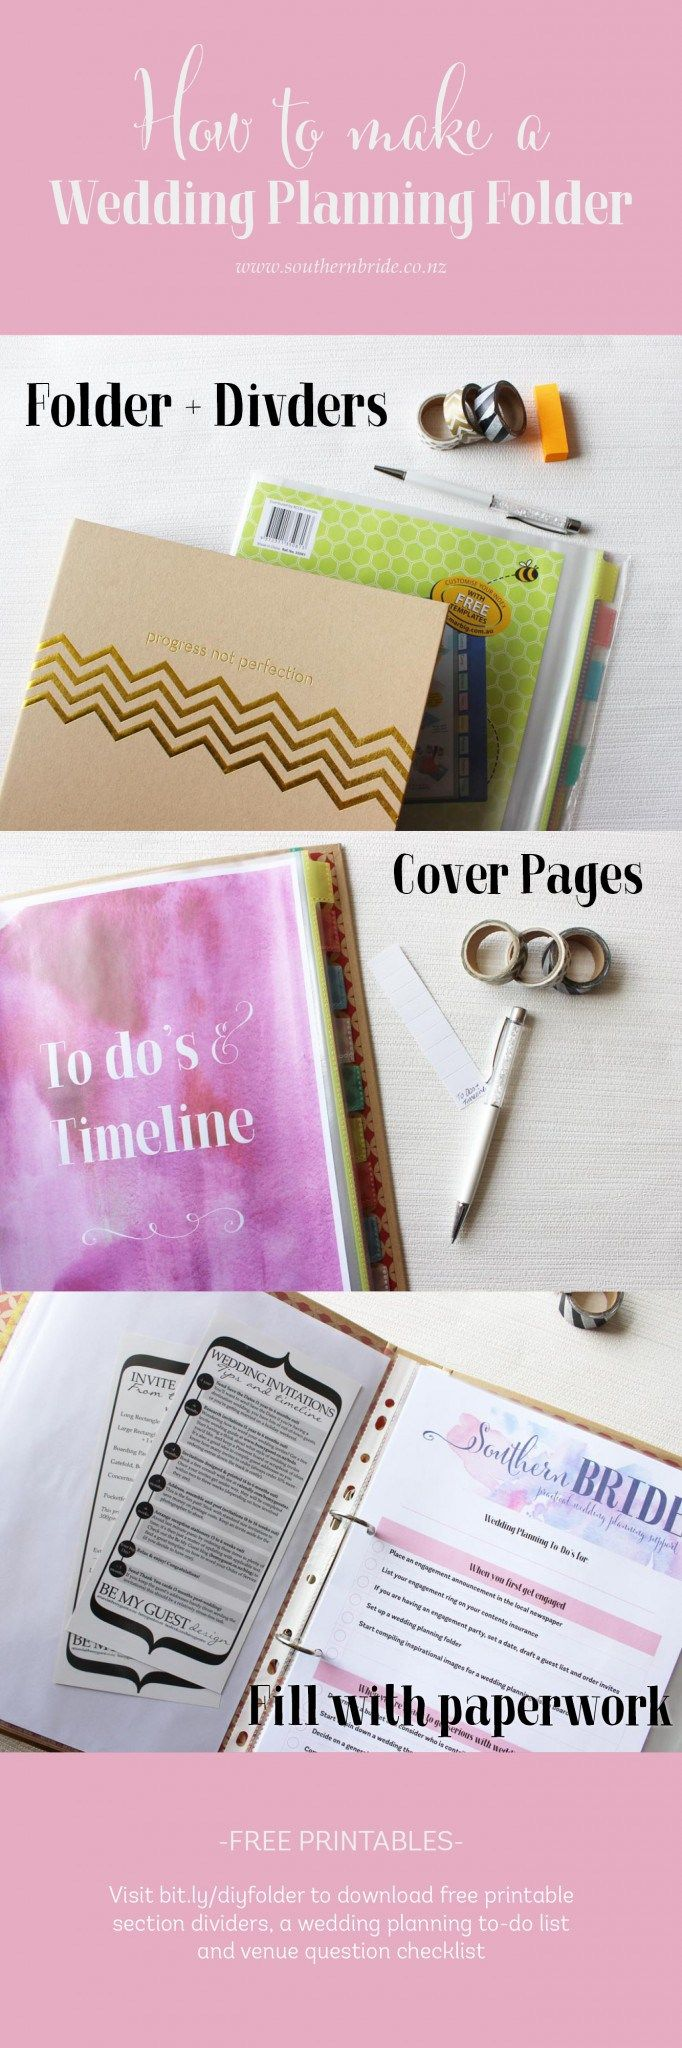 Instructions For Making Your Own Wedding Planner With Free Printable